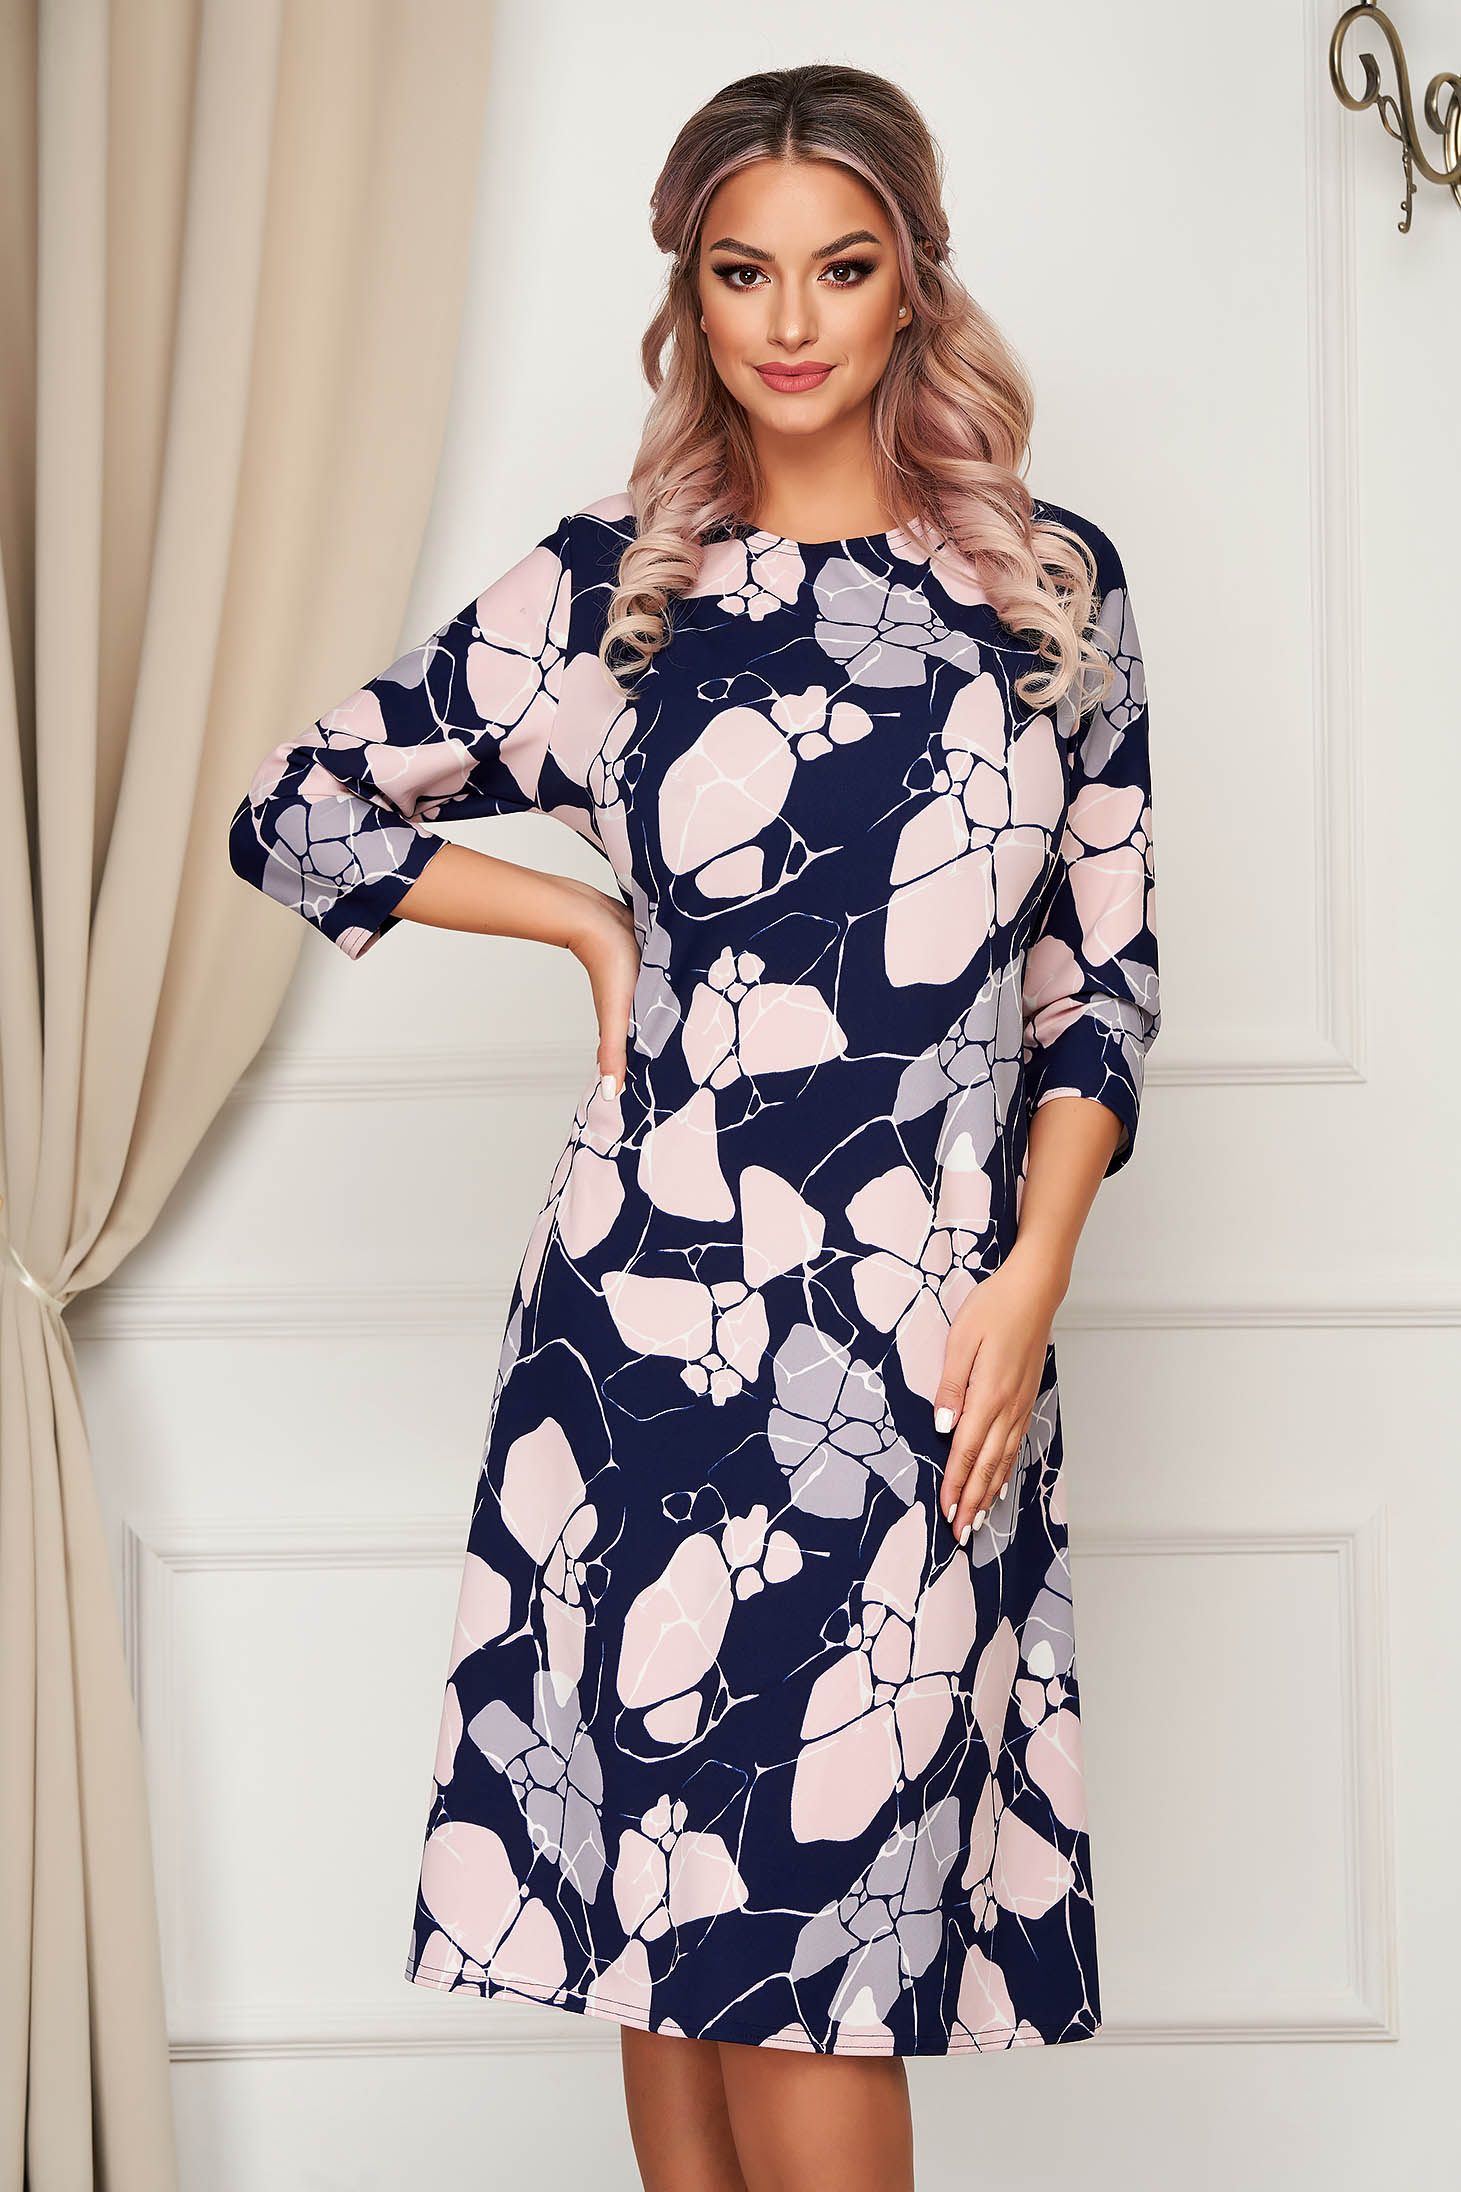 Pink dress midi daily a-line slightly elastic fabric with floral print